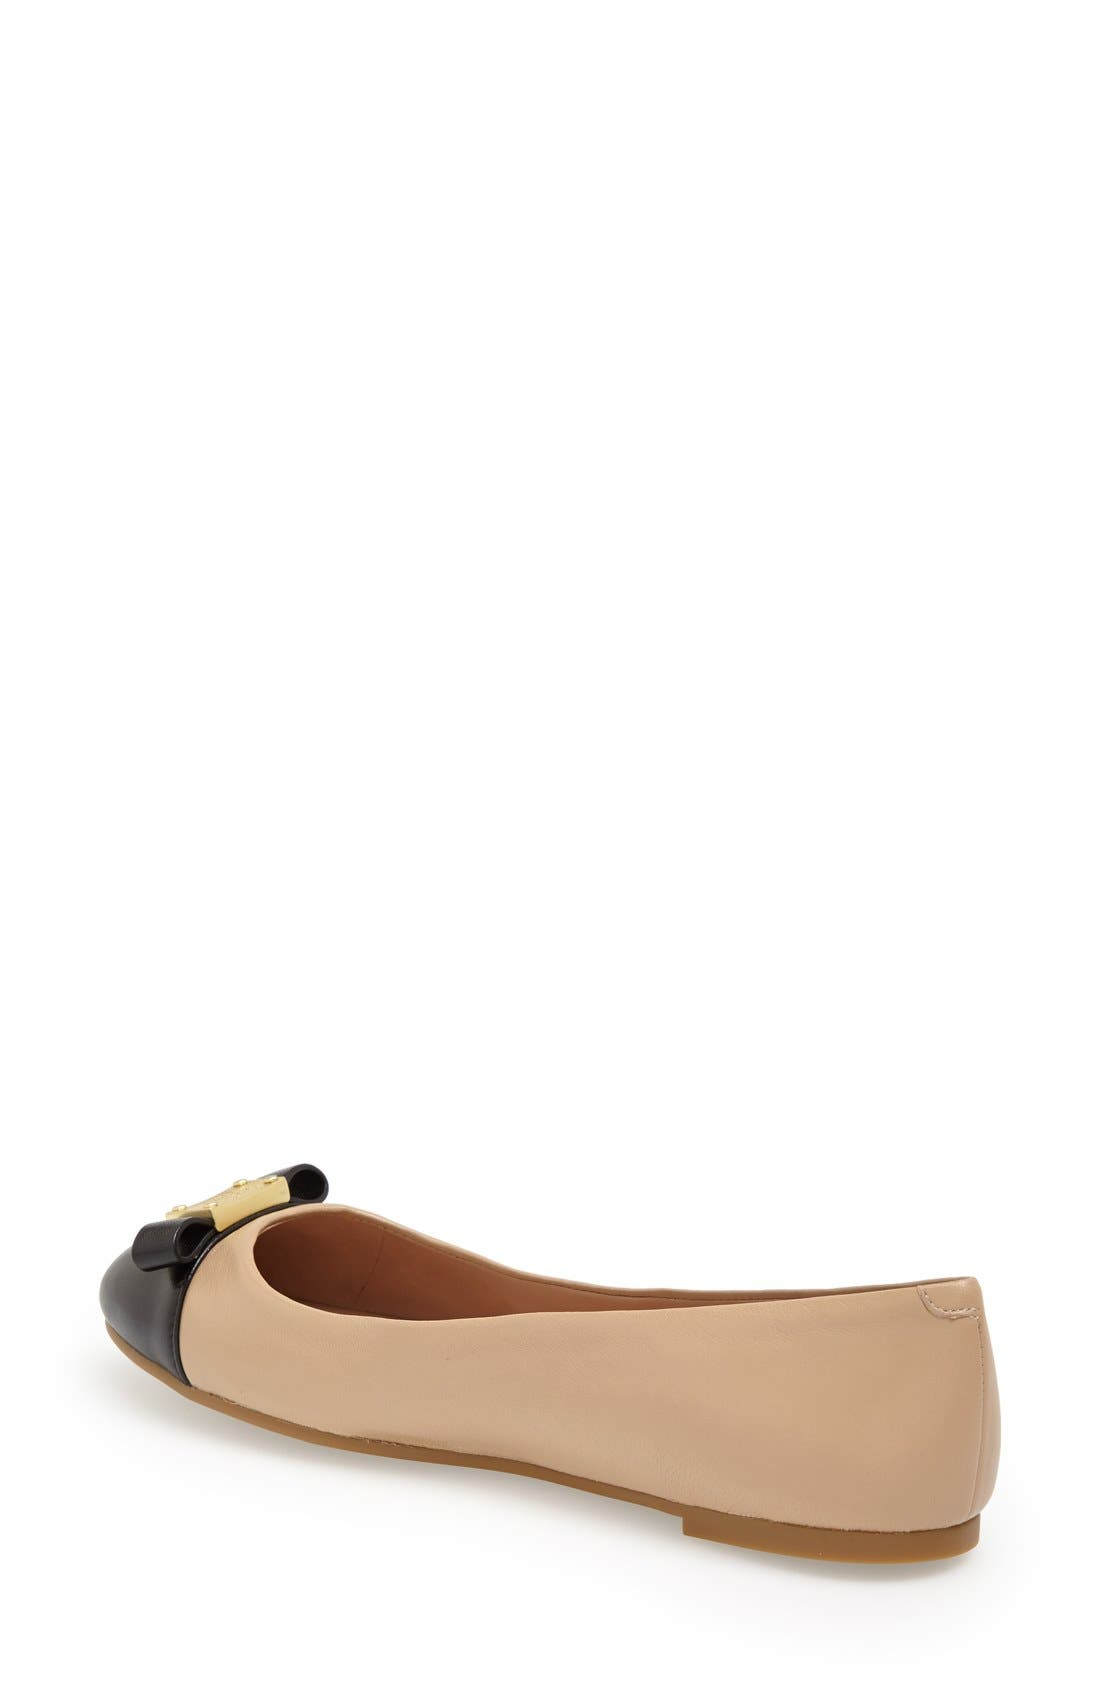 Alternate Image 2  - MARC BY MARC JACOBS Cap Toe Ballet Flat (Women)